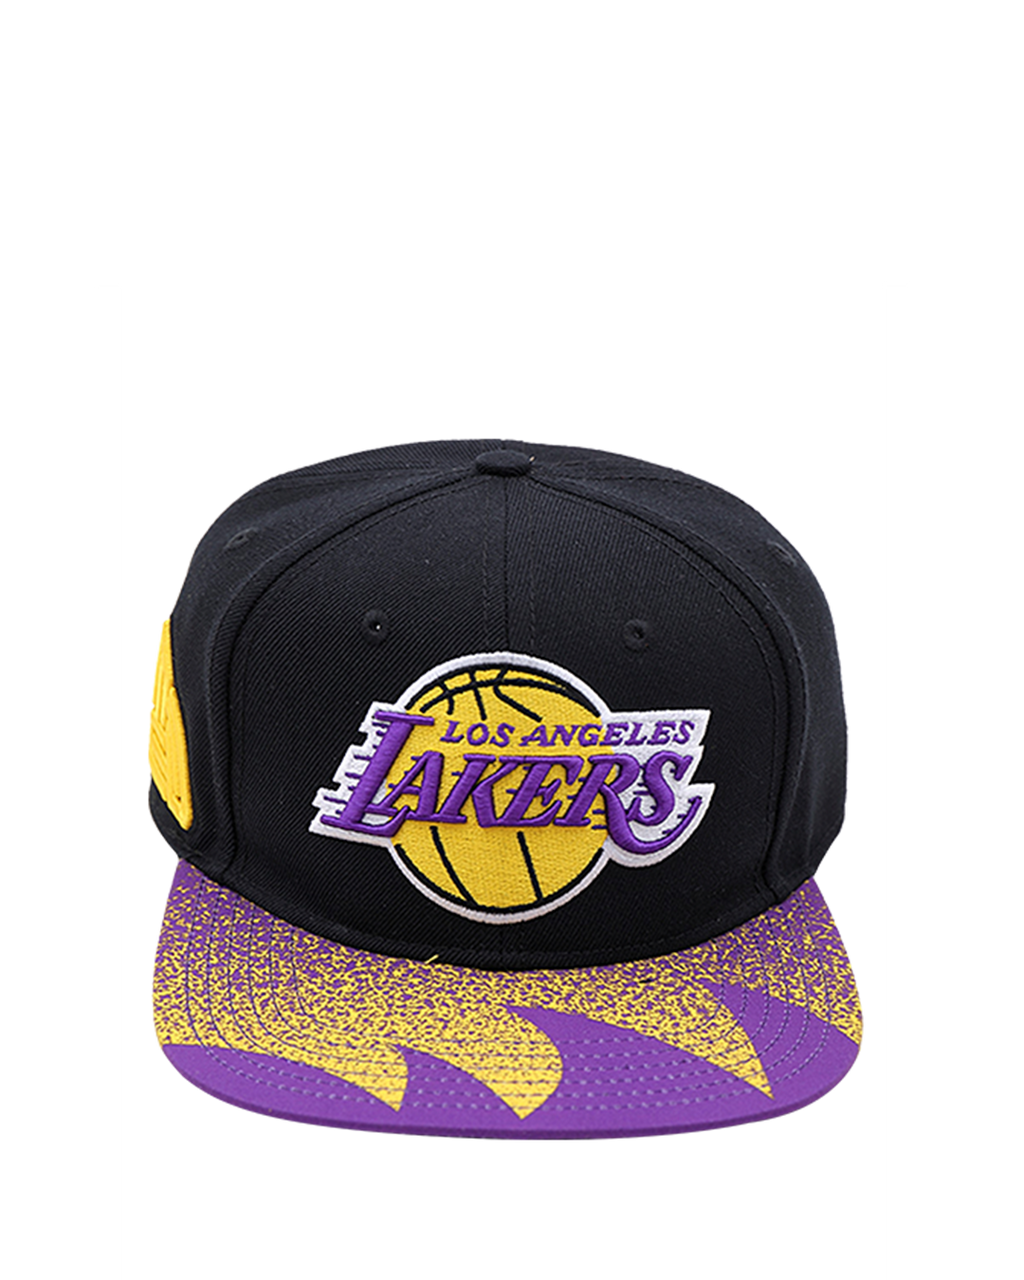 Los Angeles Lakers Black Pyramid Black Snapback Cap